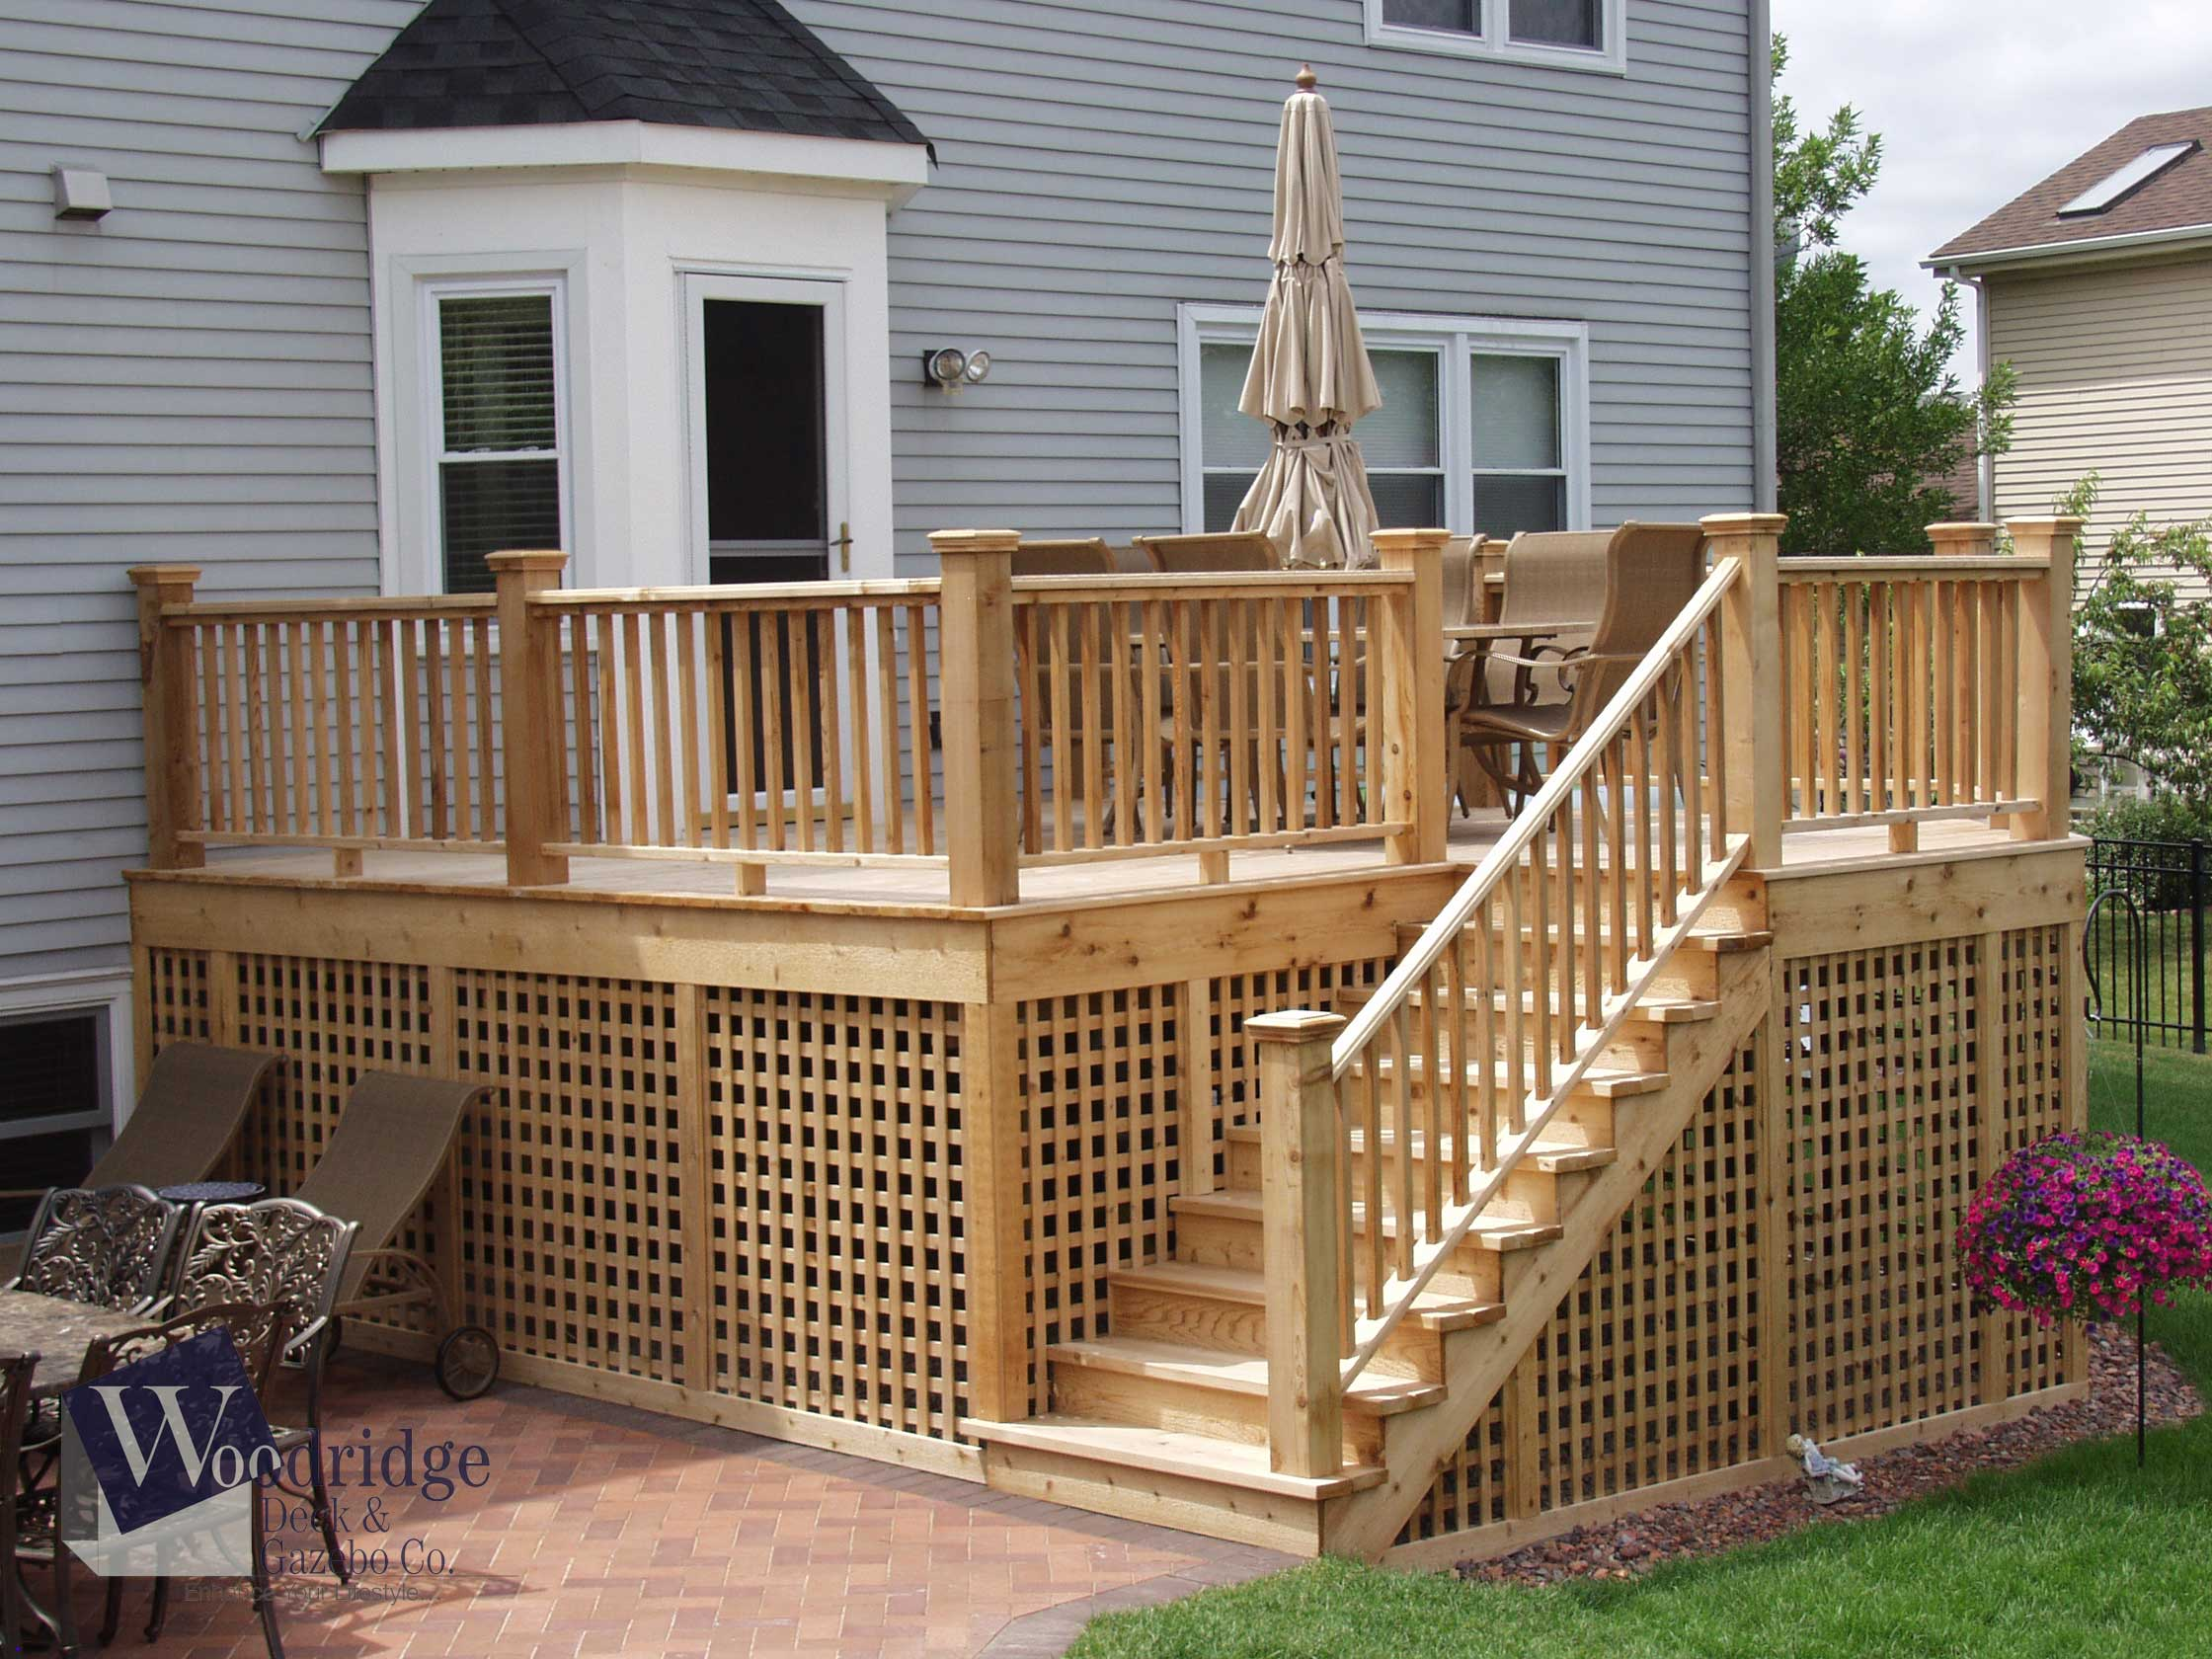 LL-06 Cedar Deck and Railings with Lattice